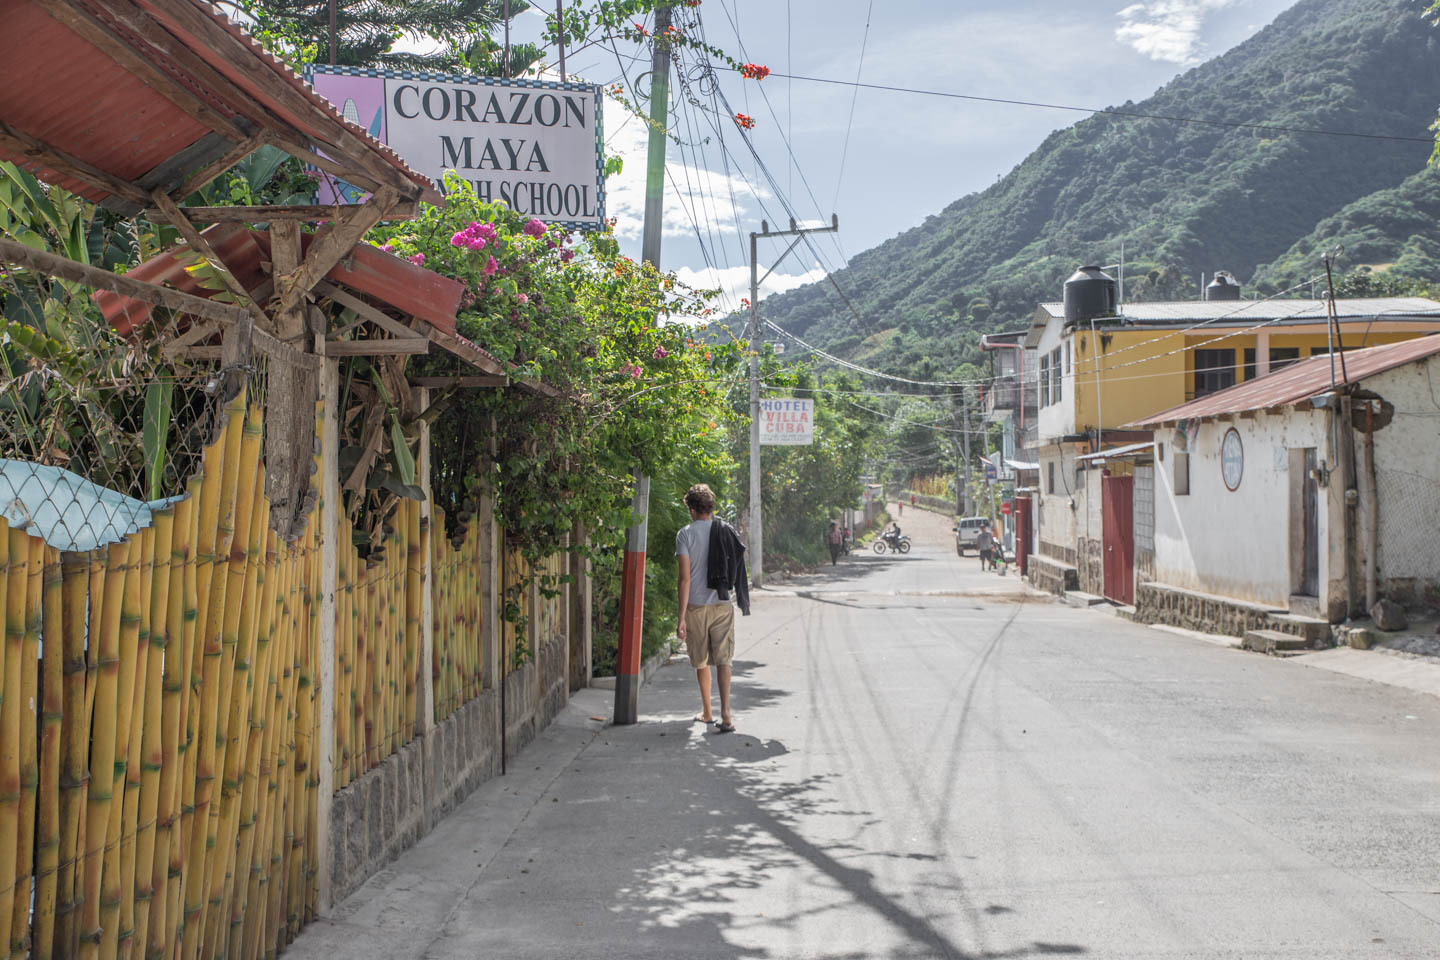 Our Spanish school located on the outskirts of town at the base of the imposing Volcán San Pedro.